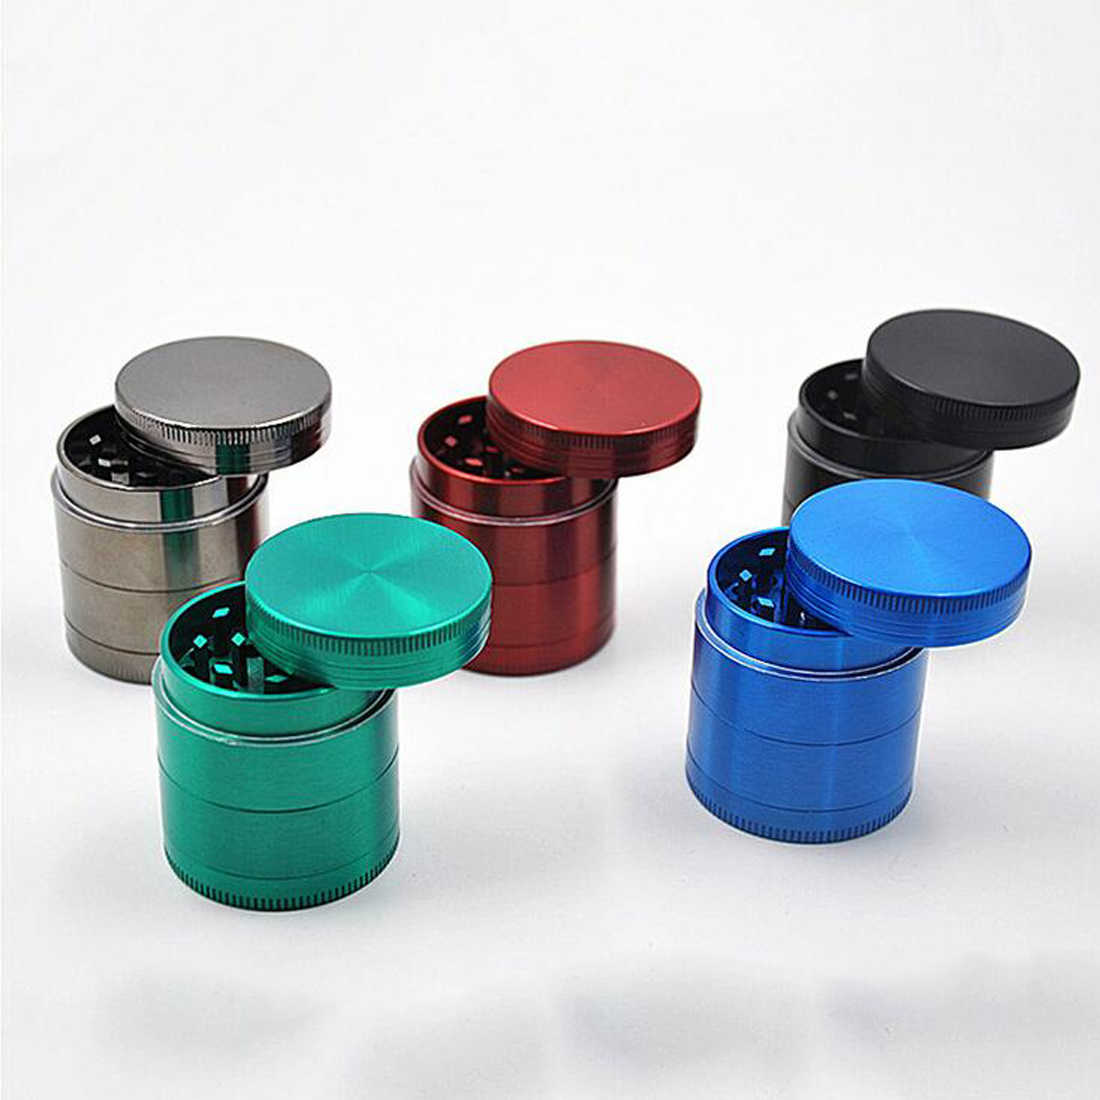 Pipe 4 Layer Broken Smoke Grinder Metal Tobacco Grinder Smoking Pipe Herb  Grinders Weed Cigarette Pipe Maker